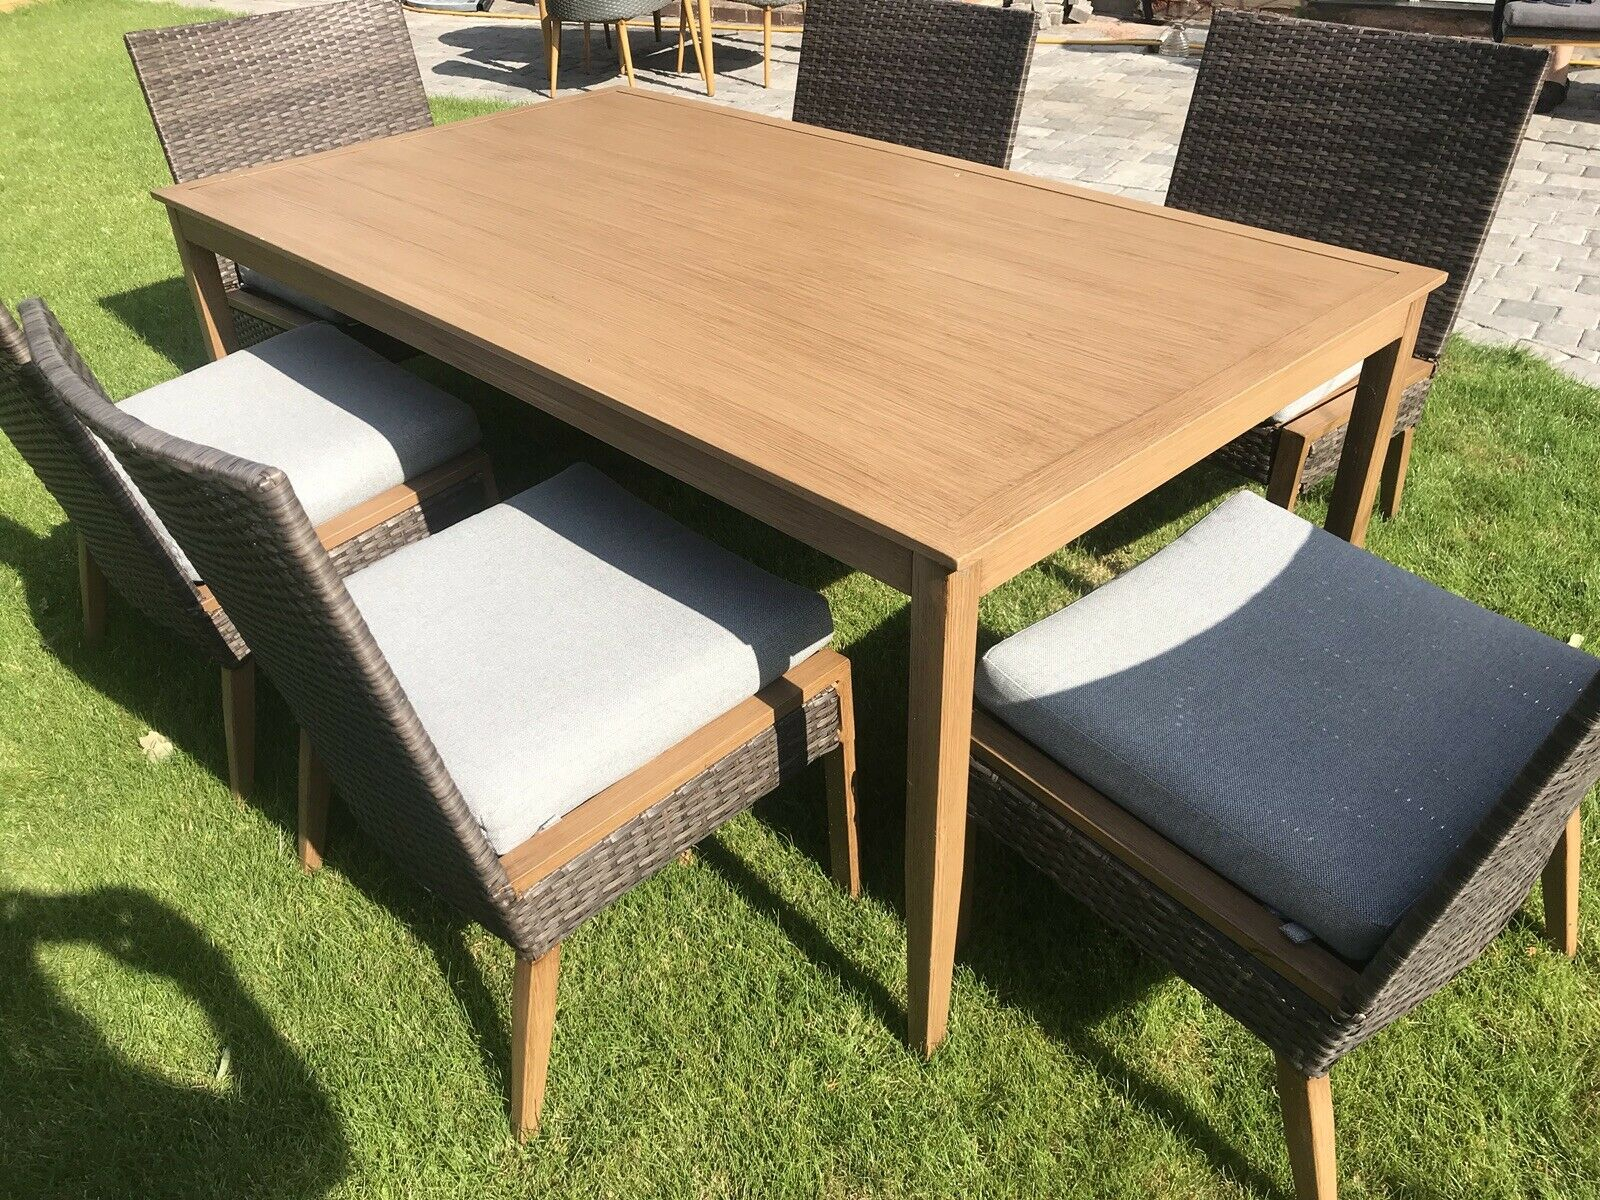 6 Seater Patio Dining Set Outdoor Garden Furniture Table And Chairs With Cushion in proportions 1600 X 1200